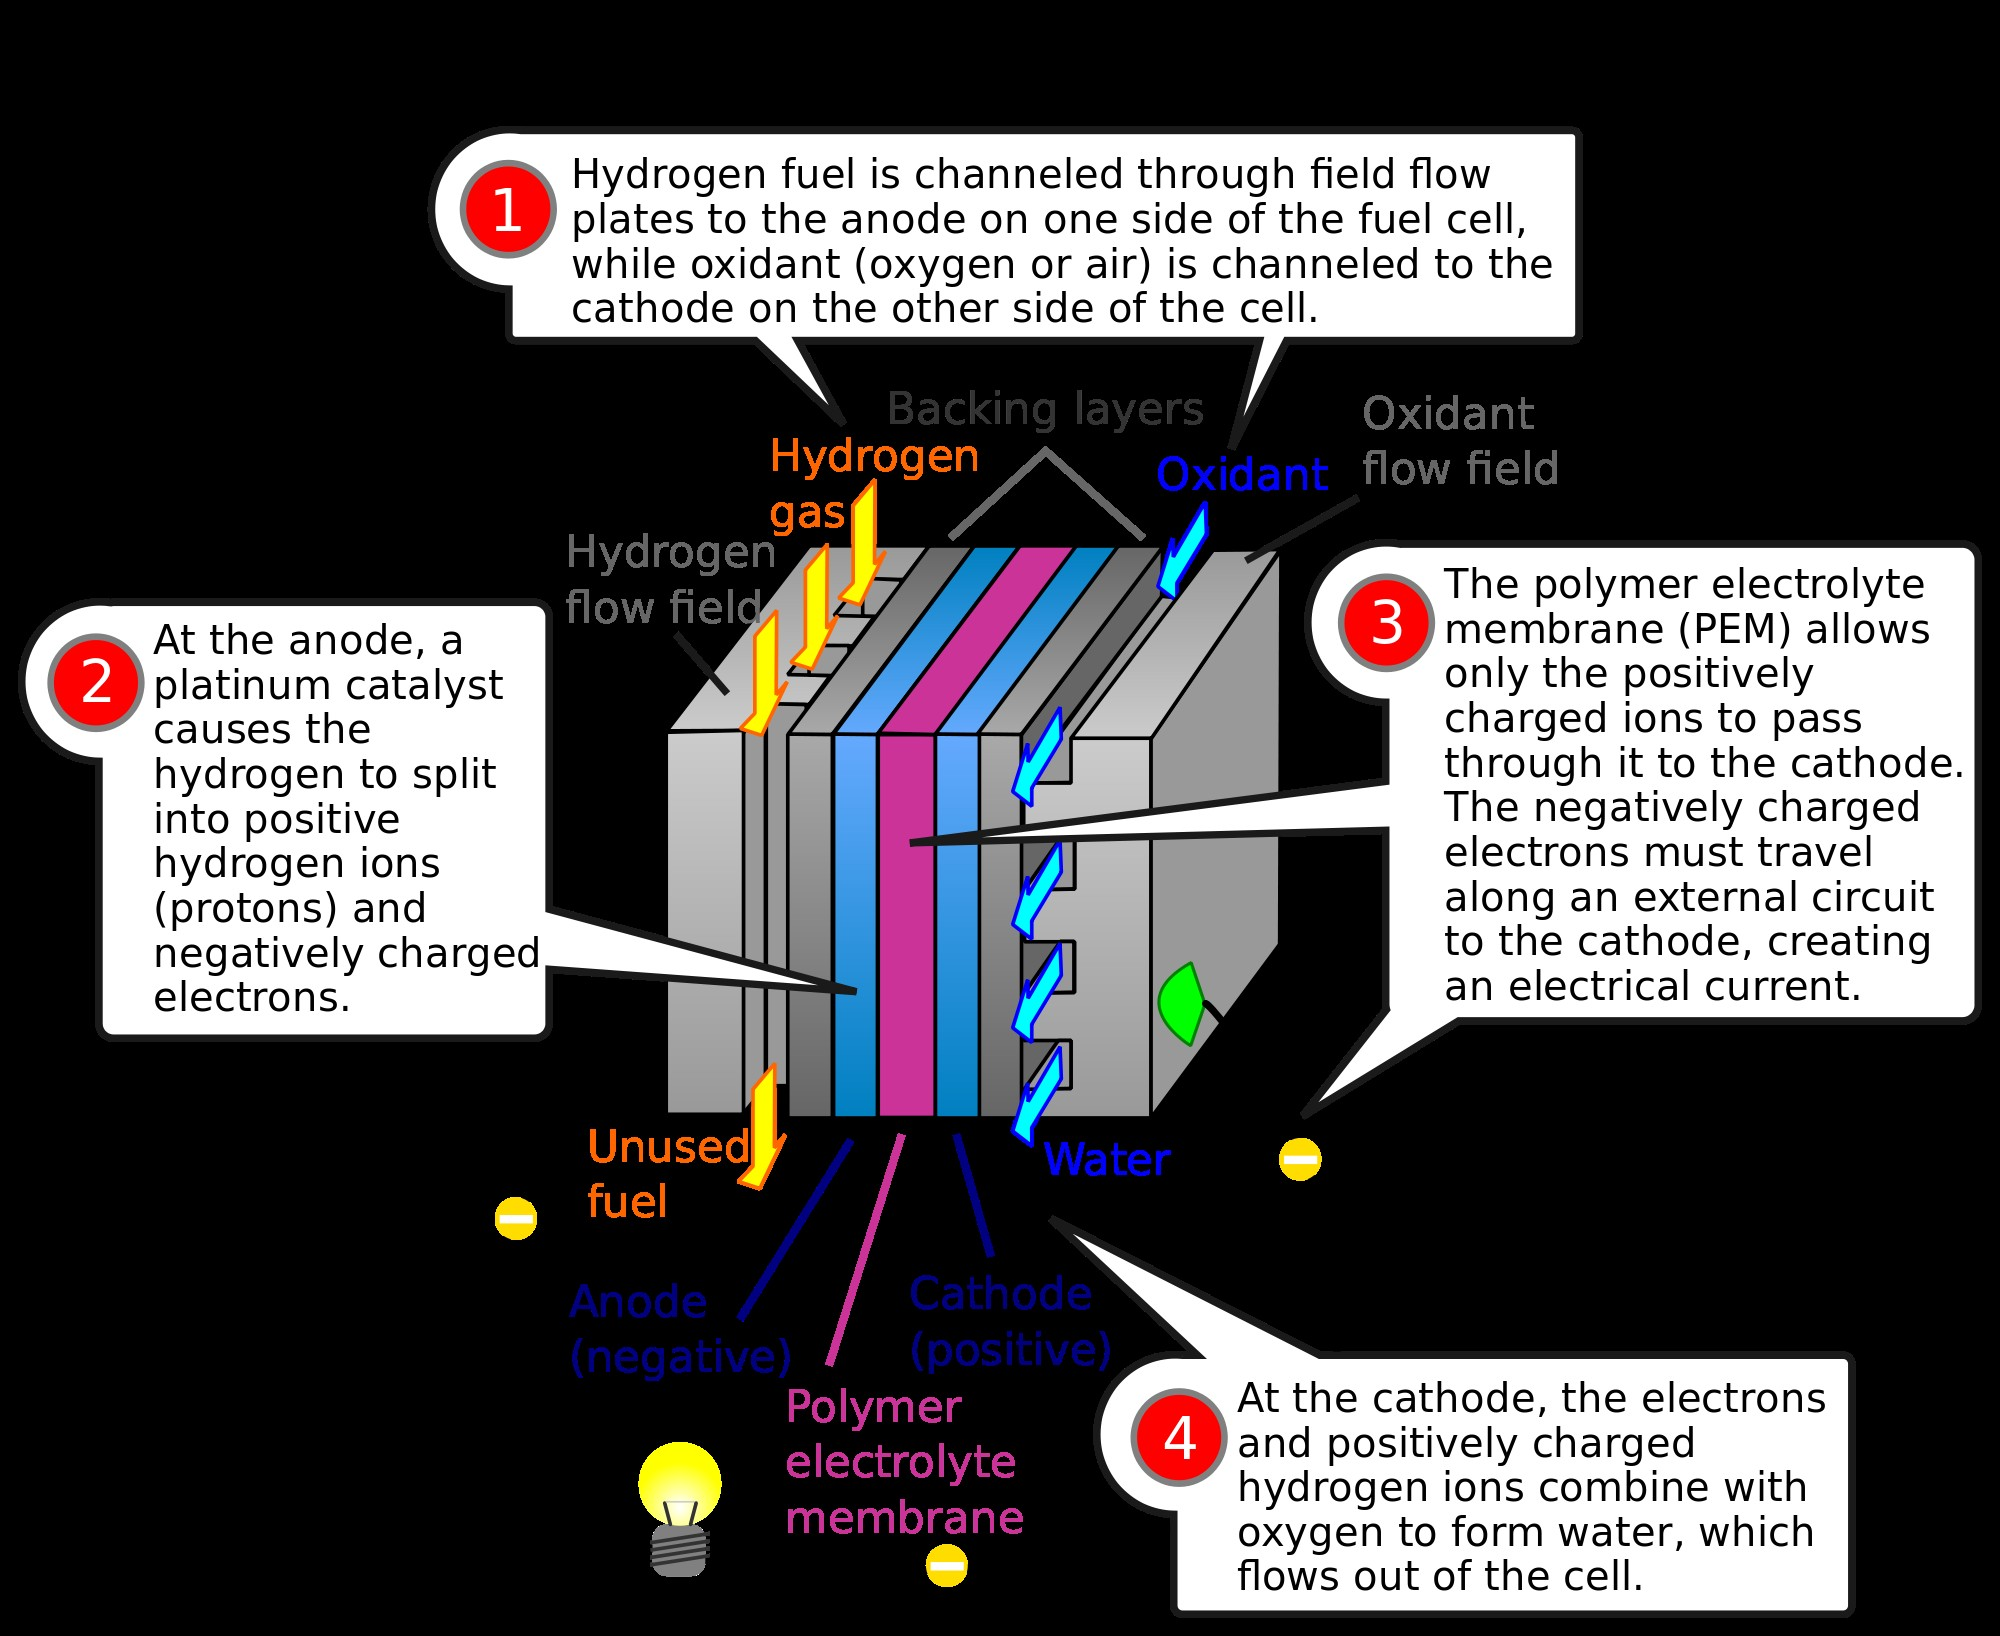 Car Engine Diagram Animation Harvest Energy From Thin Air with Graphene Of Car Engine Diagram Animation